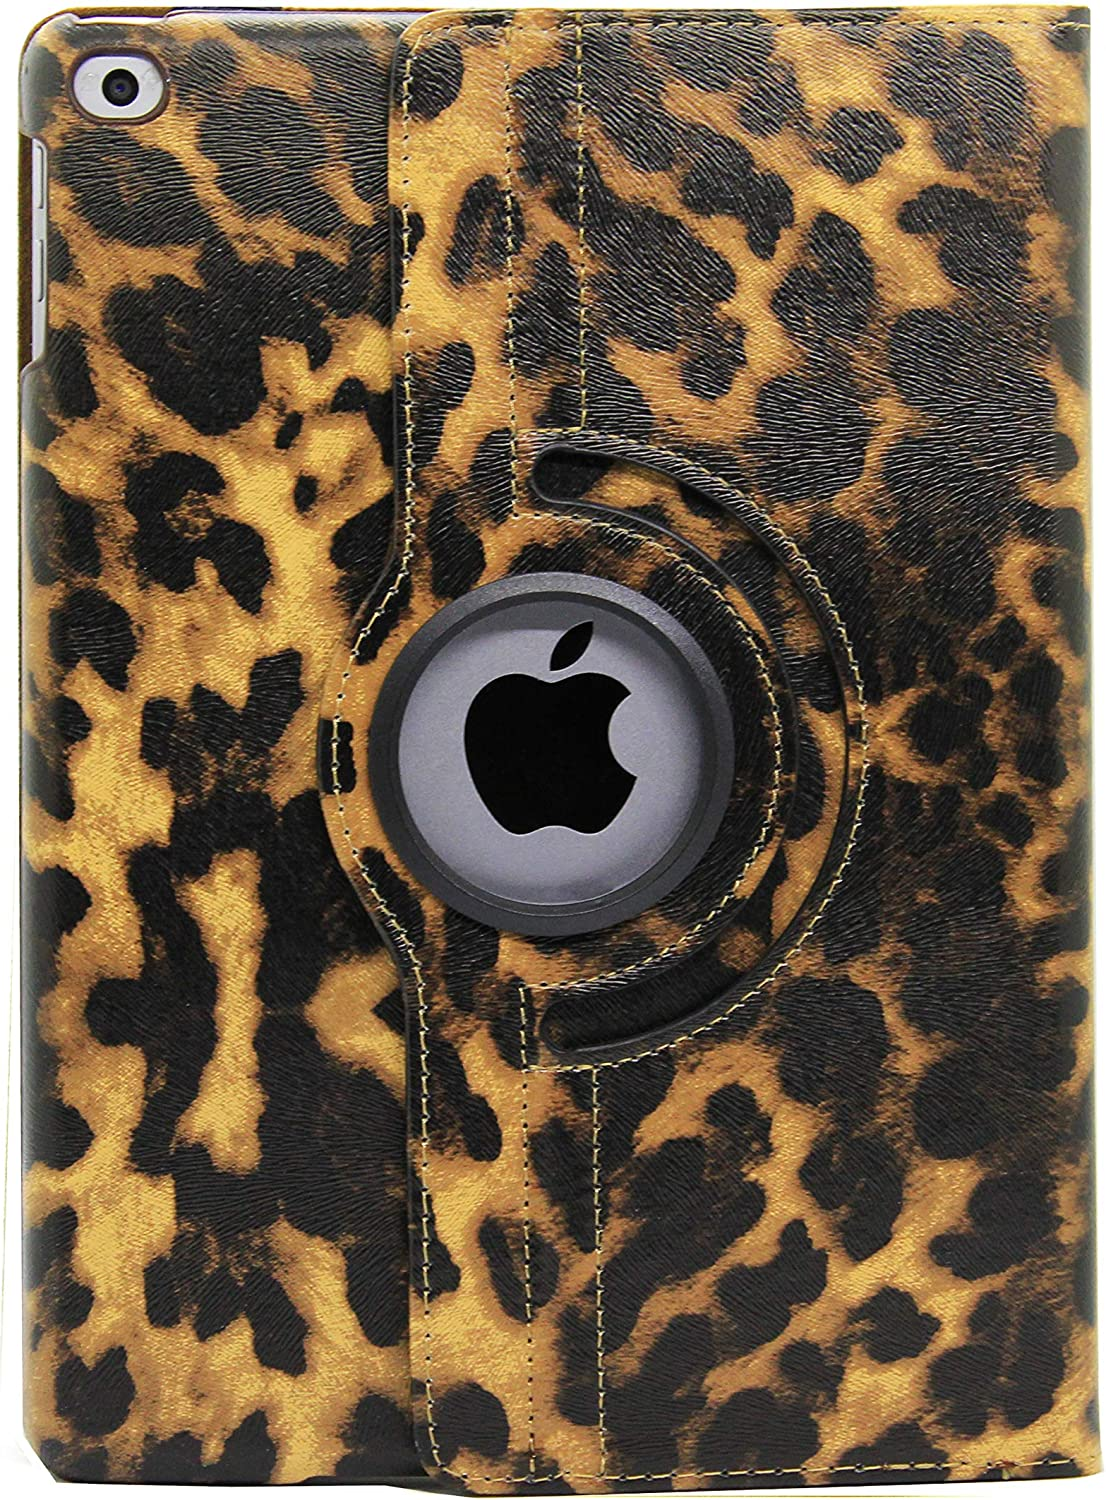 "iPad Air (3rd Generation) 10.5"" 2019 Case, iPad Pro 10.5"" 2017 Case, LiViTech(TM) Leopard Design Series 360 Degree Rotating PU Leather Case Cover for iPad 10.5 inch Case 2019 2017 Model (Brown)"